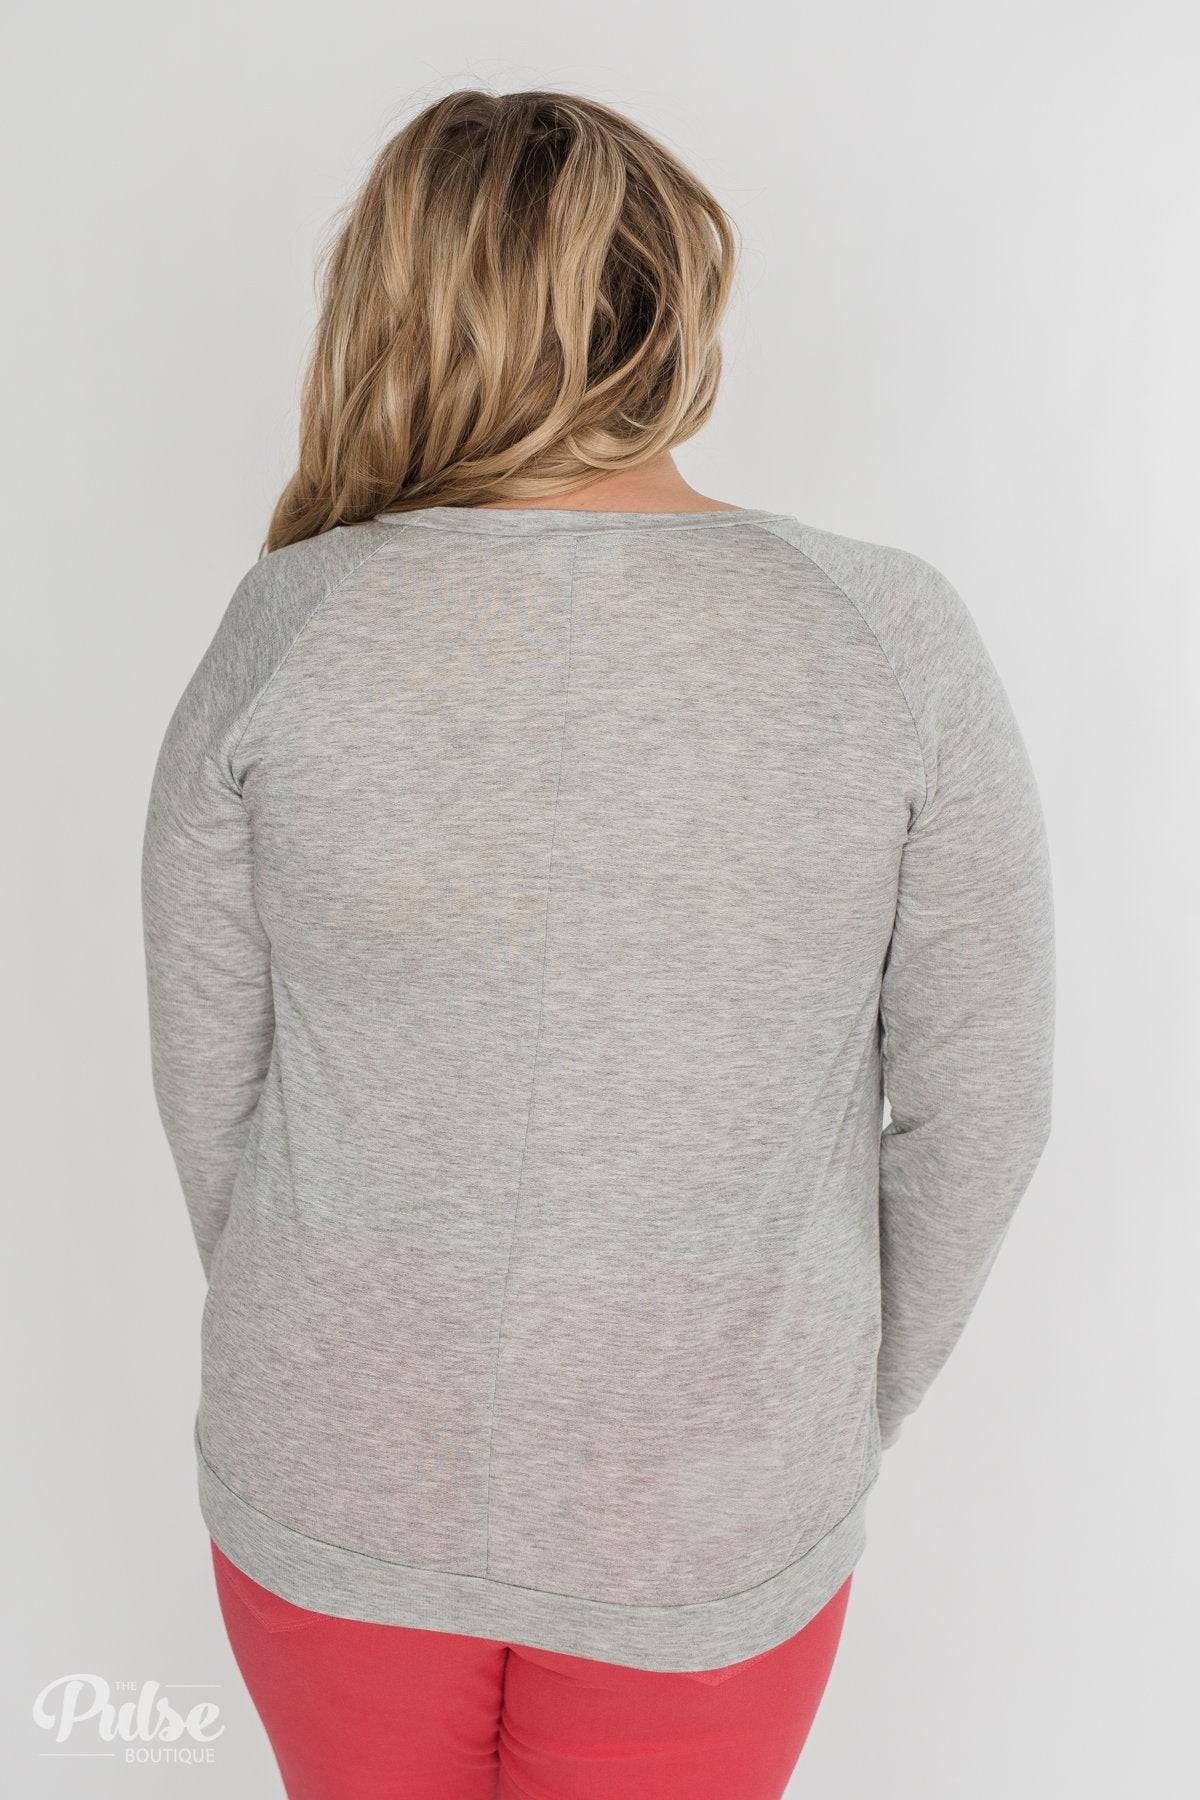 Leopard Has My Heart Pullover Top- Heather Grey